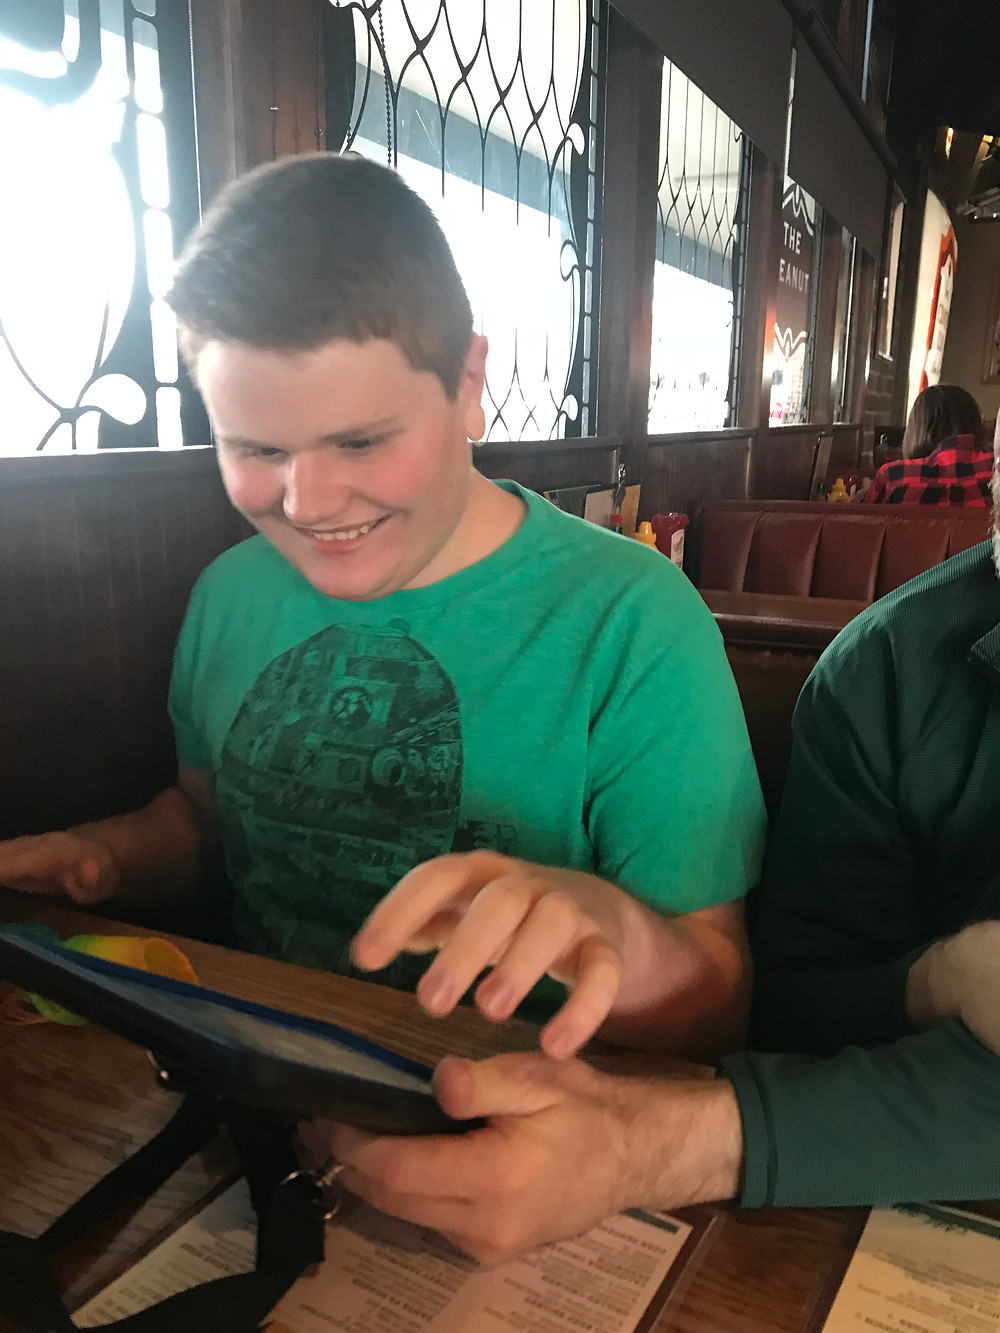 Ryan orders what he wants to eat at a Northland Restaurant